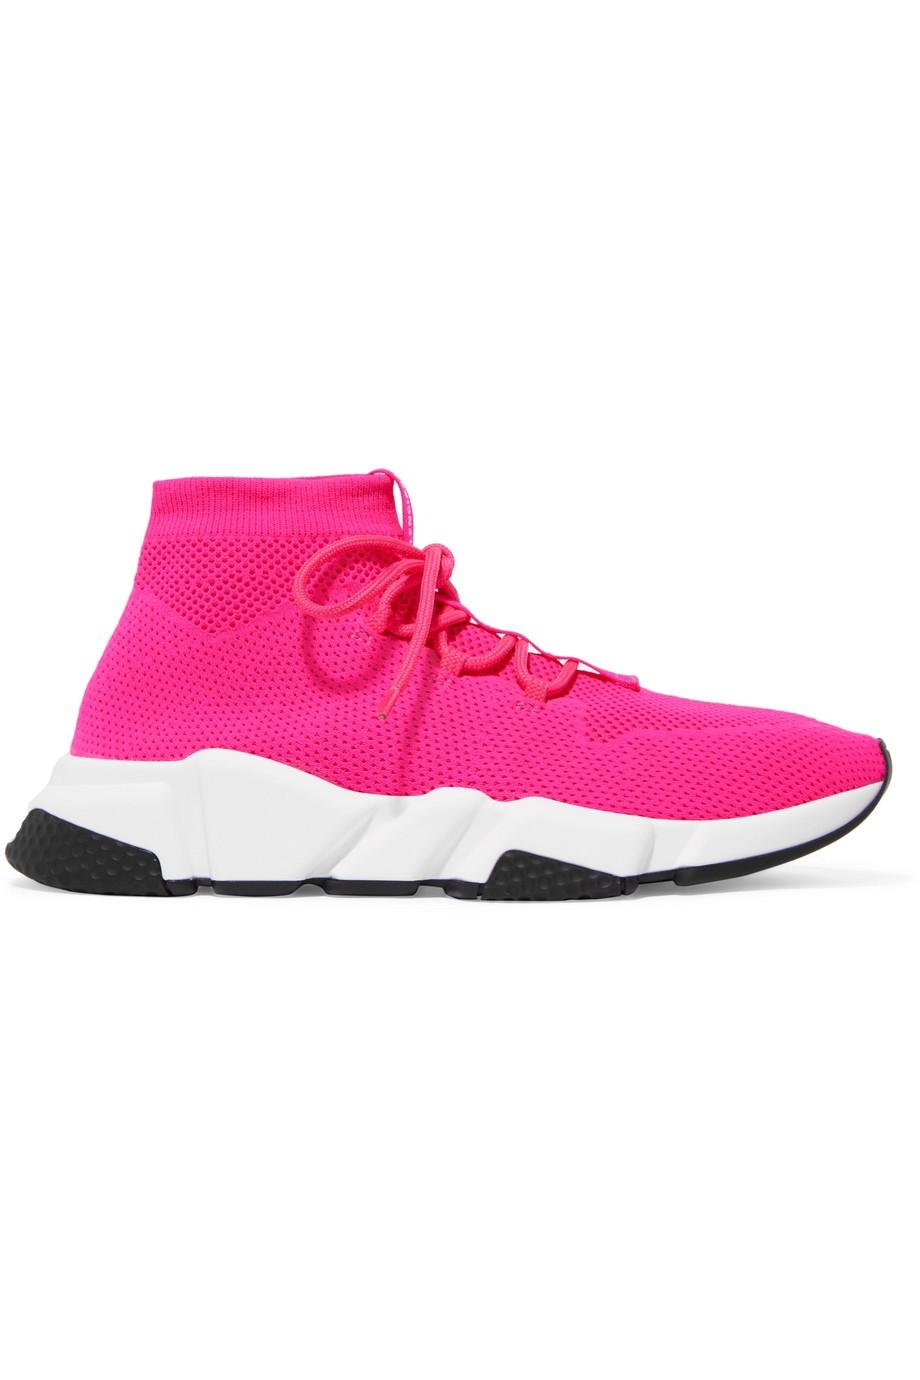 Balenciaga Pink Speed Logo-print Stretch-knit High-top Sneakers It36 Sneakers Size EU 36 (Approx. US 6) Regular (M, B)